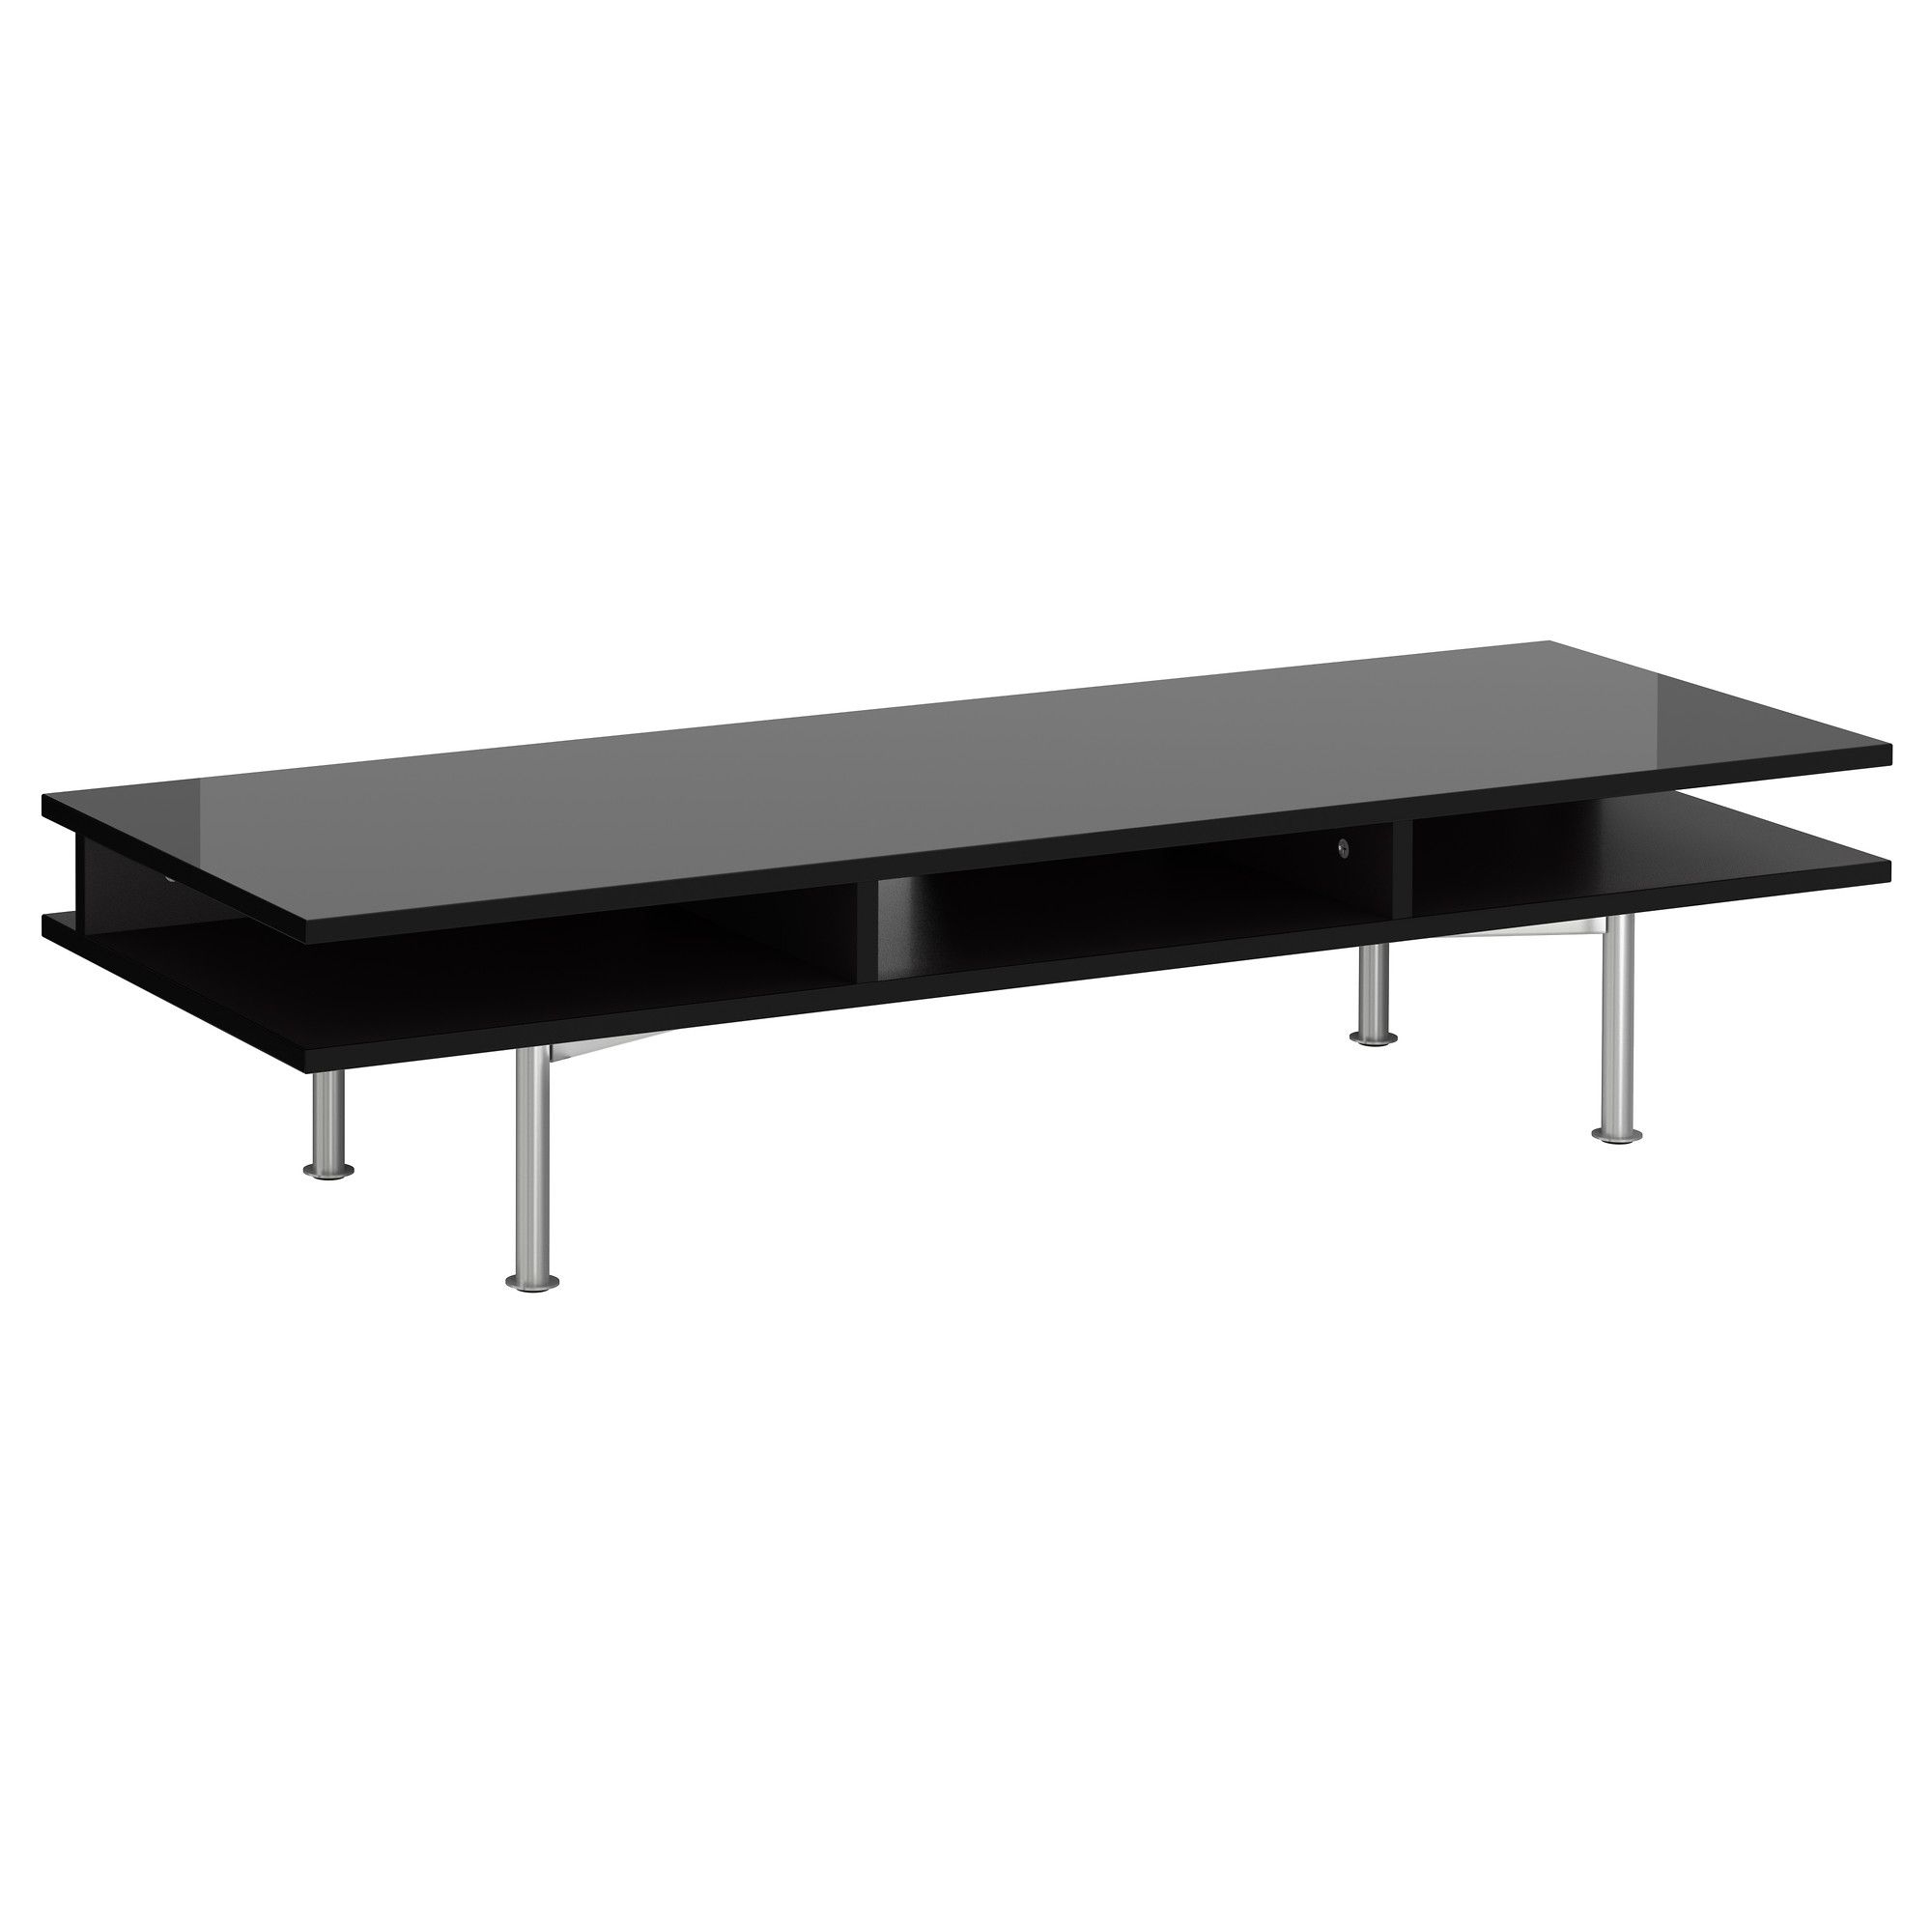 Most Recent Black Gloss Tv Benches Inside Tofteryd Tv Unit – High Gloss Black – Ikea $ (View 13 of 20)